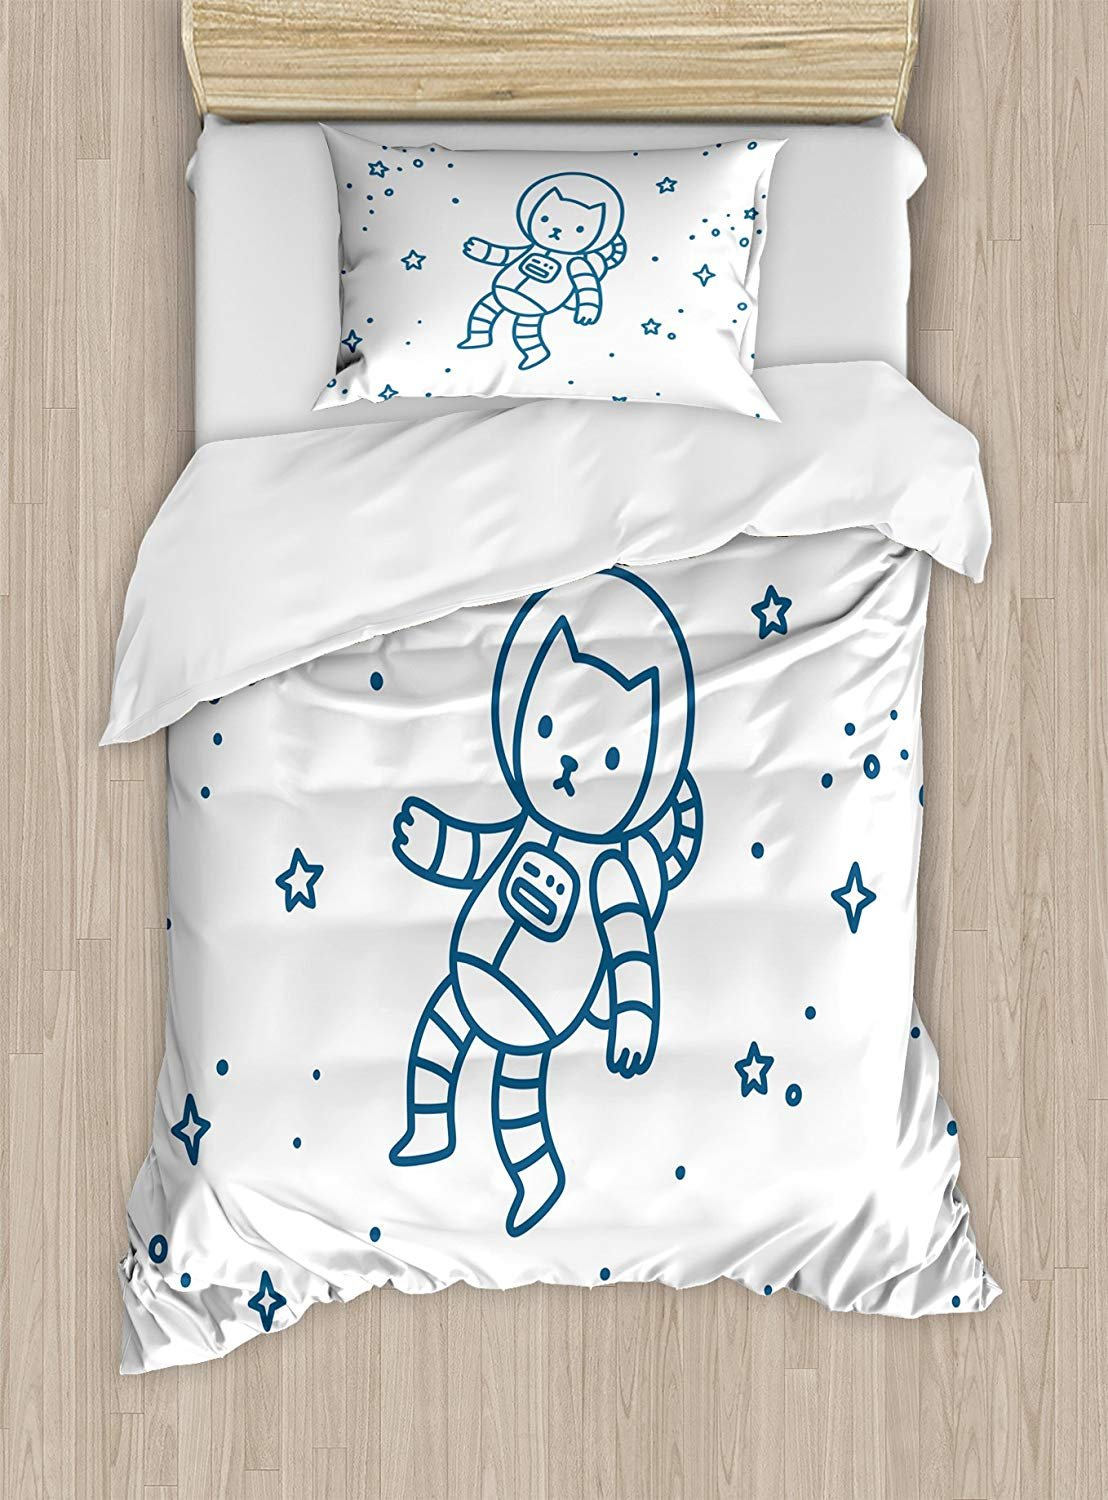 Twin XL Extra Long Bedding Set, Kids Duvet Cover Set, Cute Cartoon Astronaut Pioneer Cat Flying in Outer Space Doodle Style Constellation, Cosy House Collection 4 Piece Bedding Sets